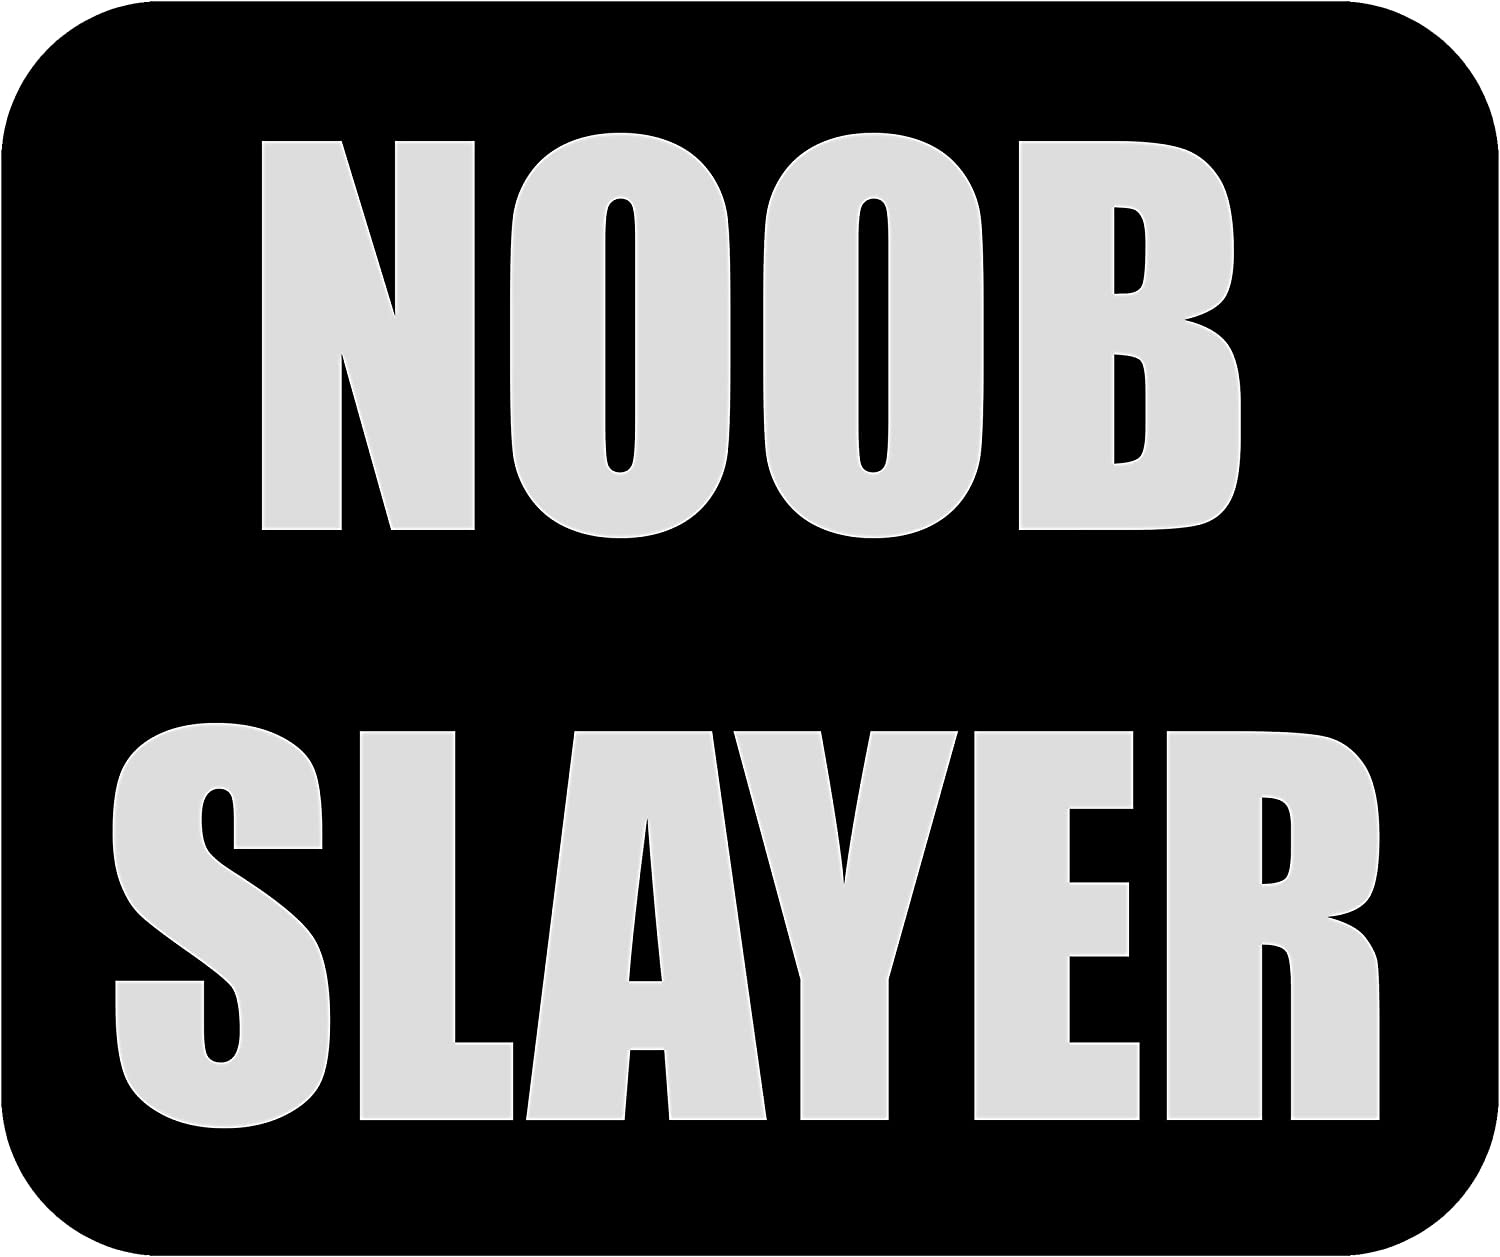 Funny Noob Slayer Gamer Mouse Pad Mat Mousepad for Laptop PC Gaming Home or Office Gift for Video Game Player